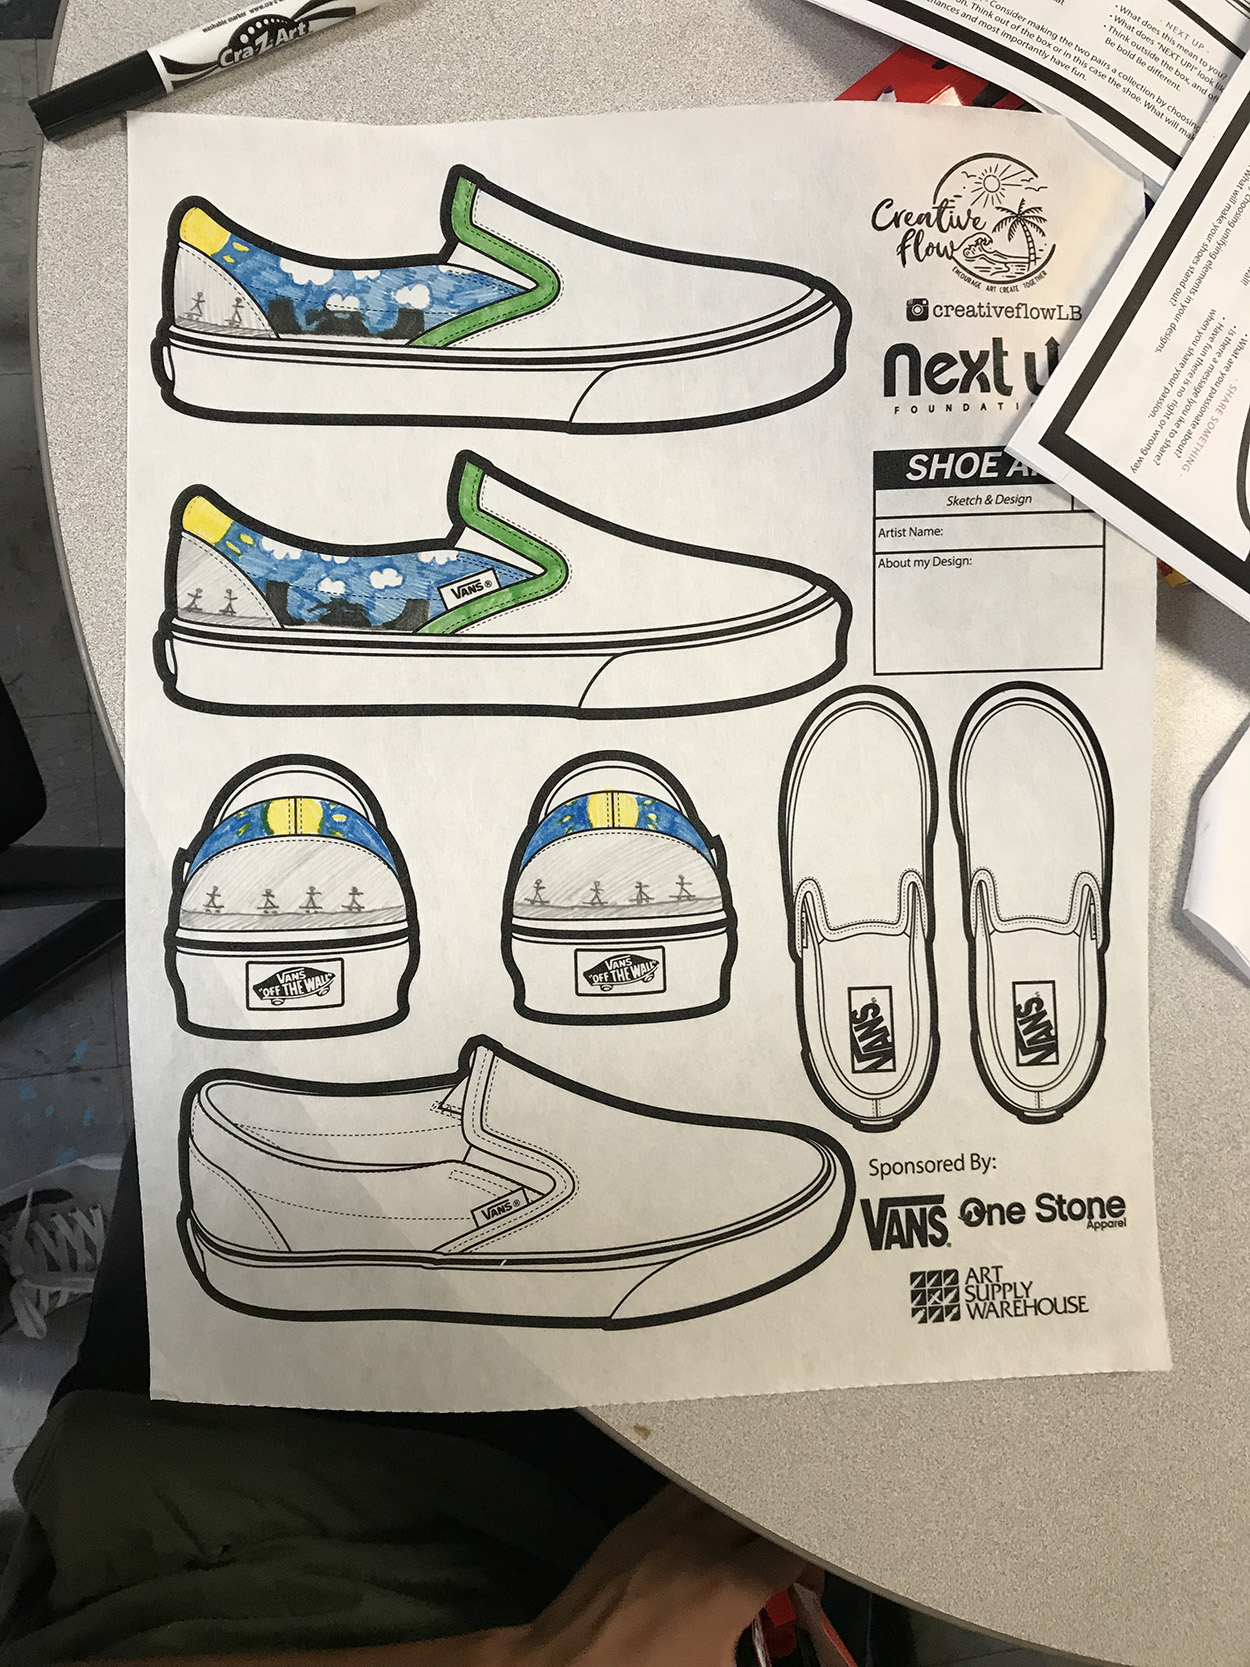 Shoe Sketch Amp Design Workshop With Creative Flow Next Up